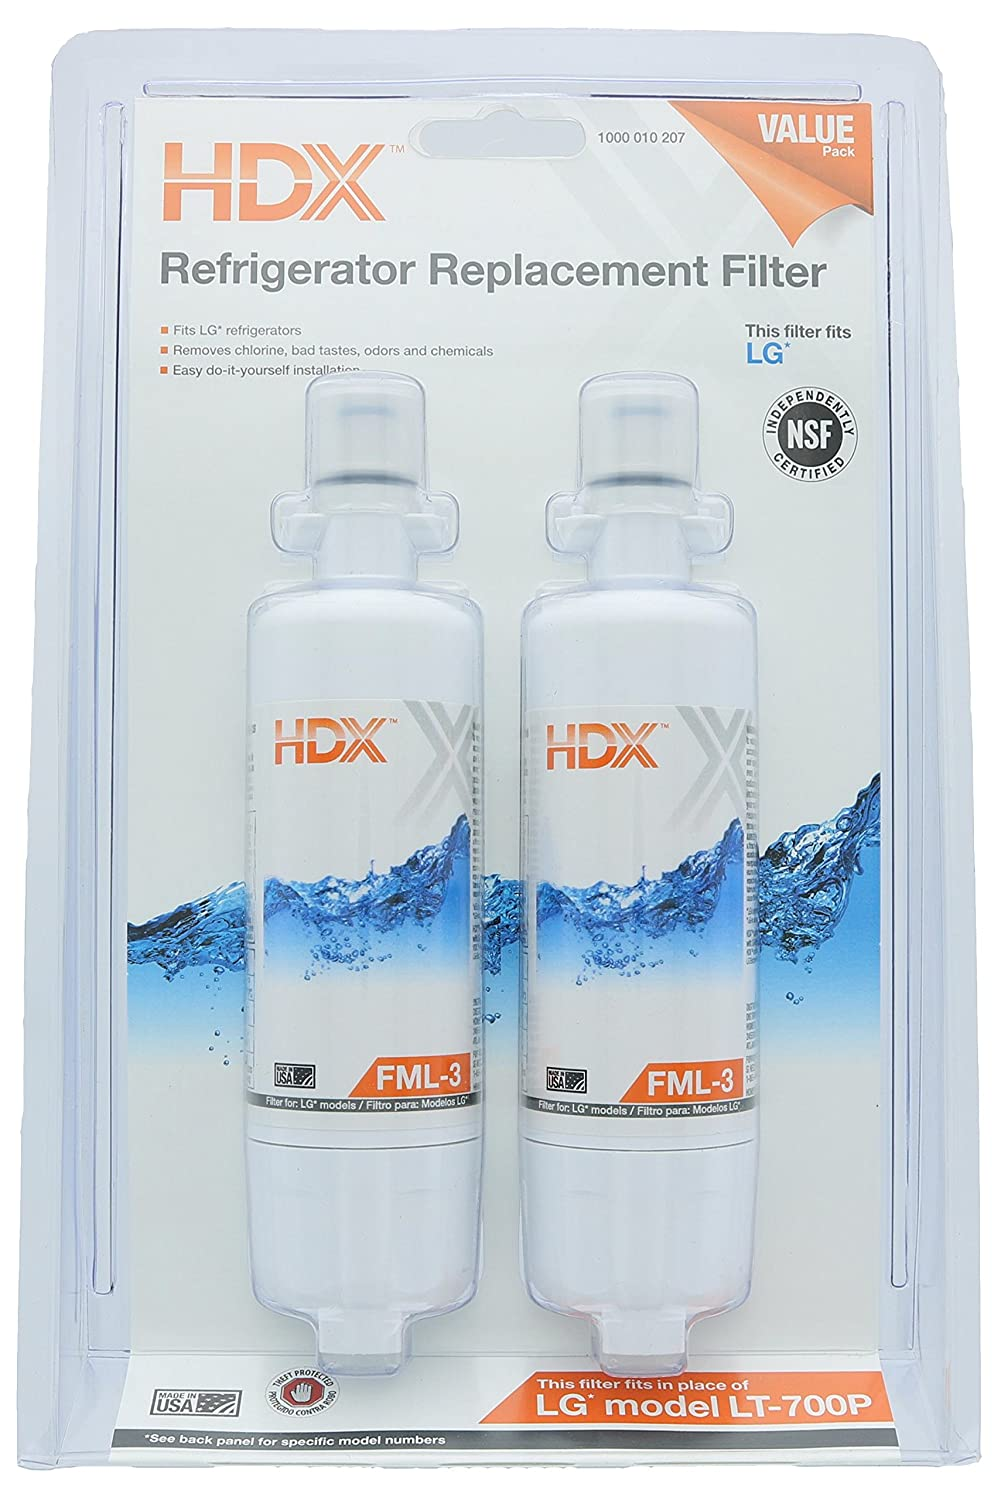 HDX FML-3 Replacement Water Filter / Purifier for LG Refrigerators (2 Pack)